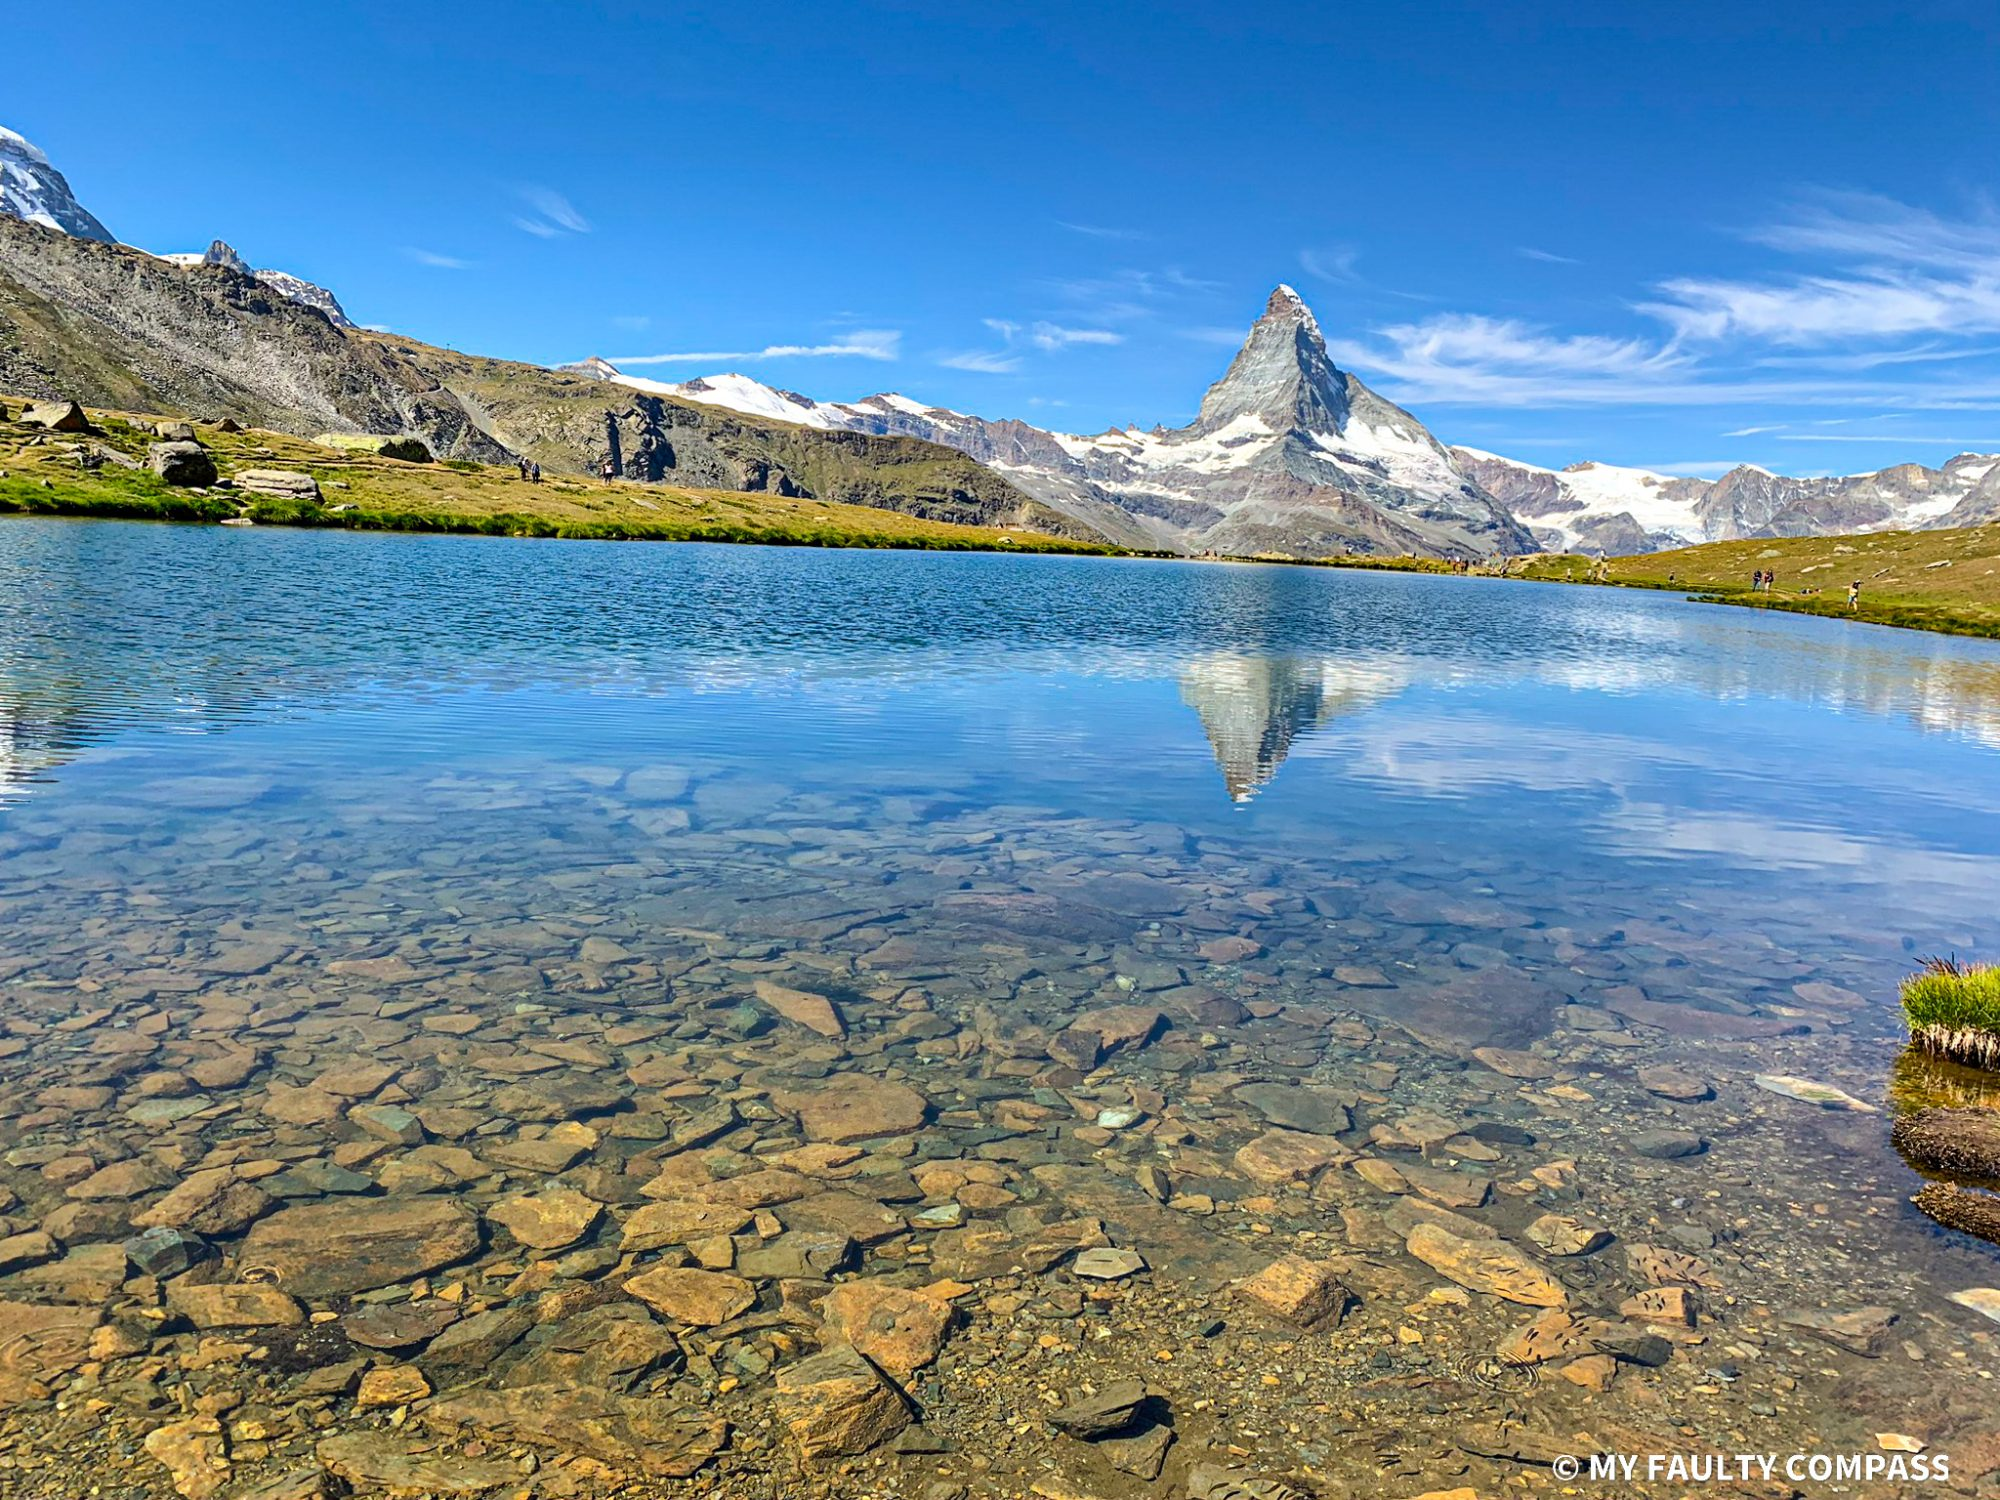 Zermatt 5 lakes hike - The Complete Guide | My Faulty Compass